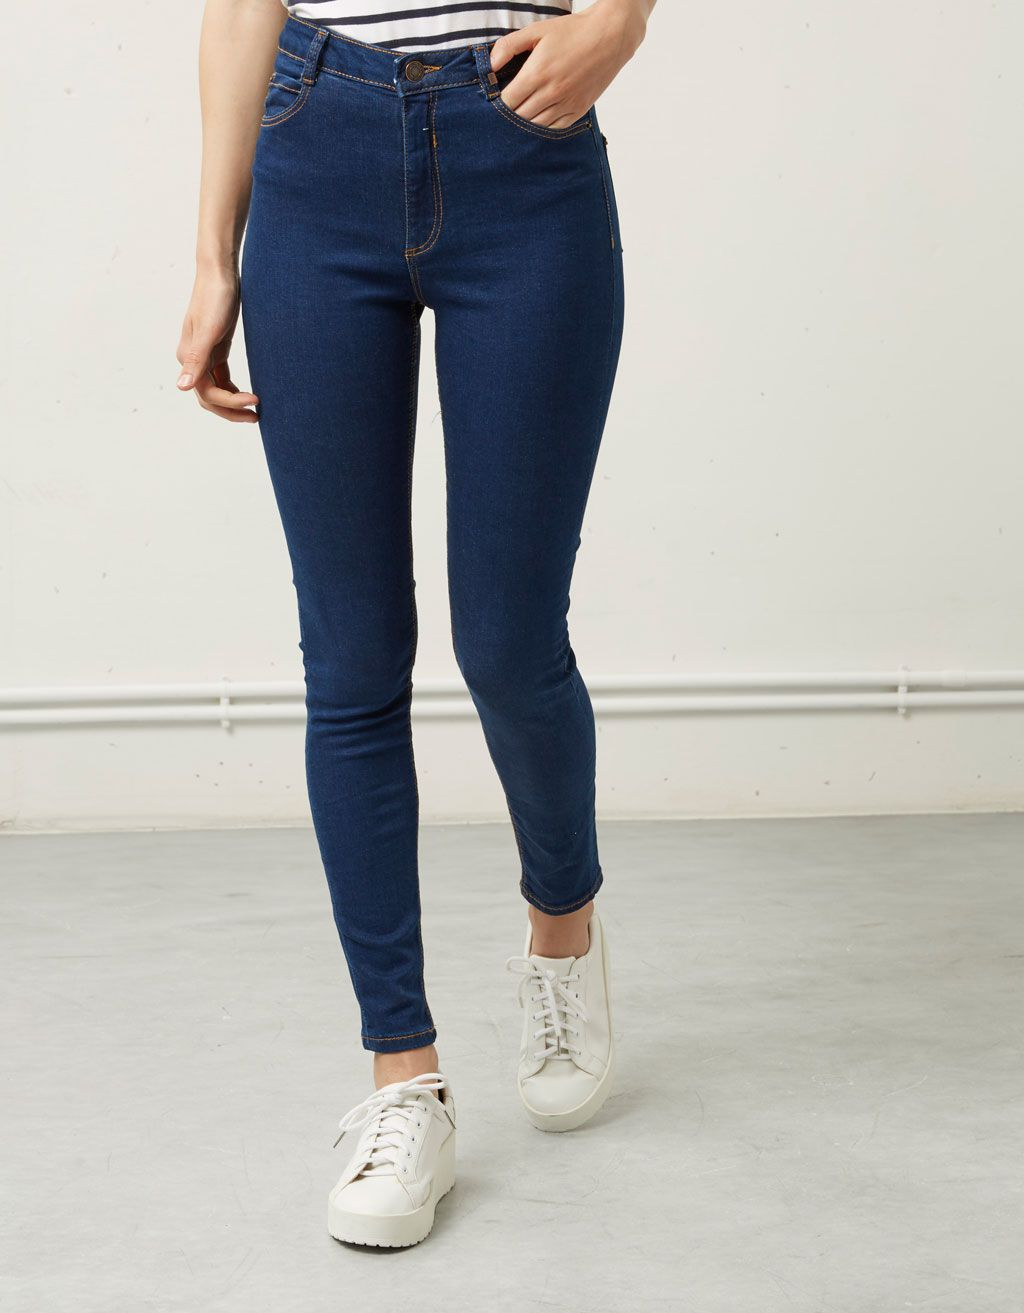 a725c73470 Super Skinny High waist jeans Bershka - High Waist - Bershka Czech Republic